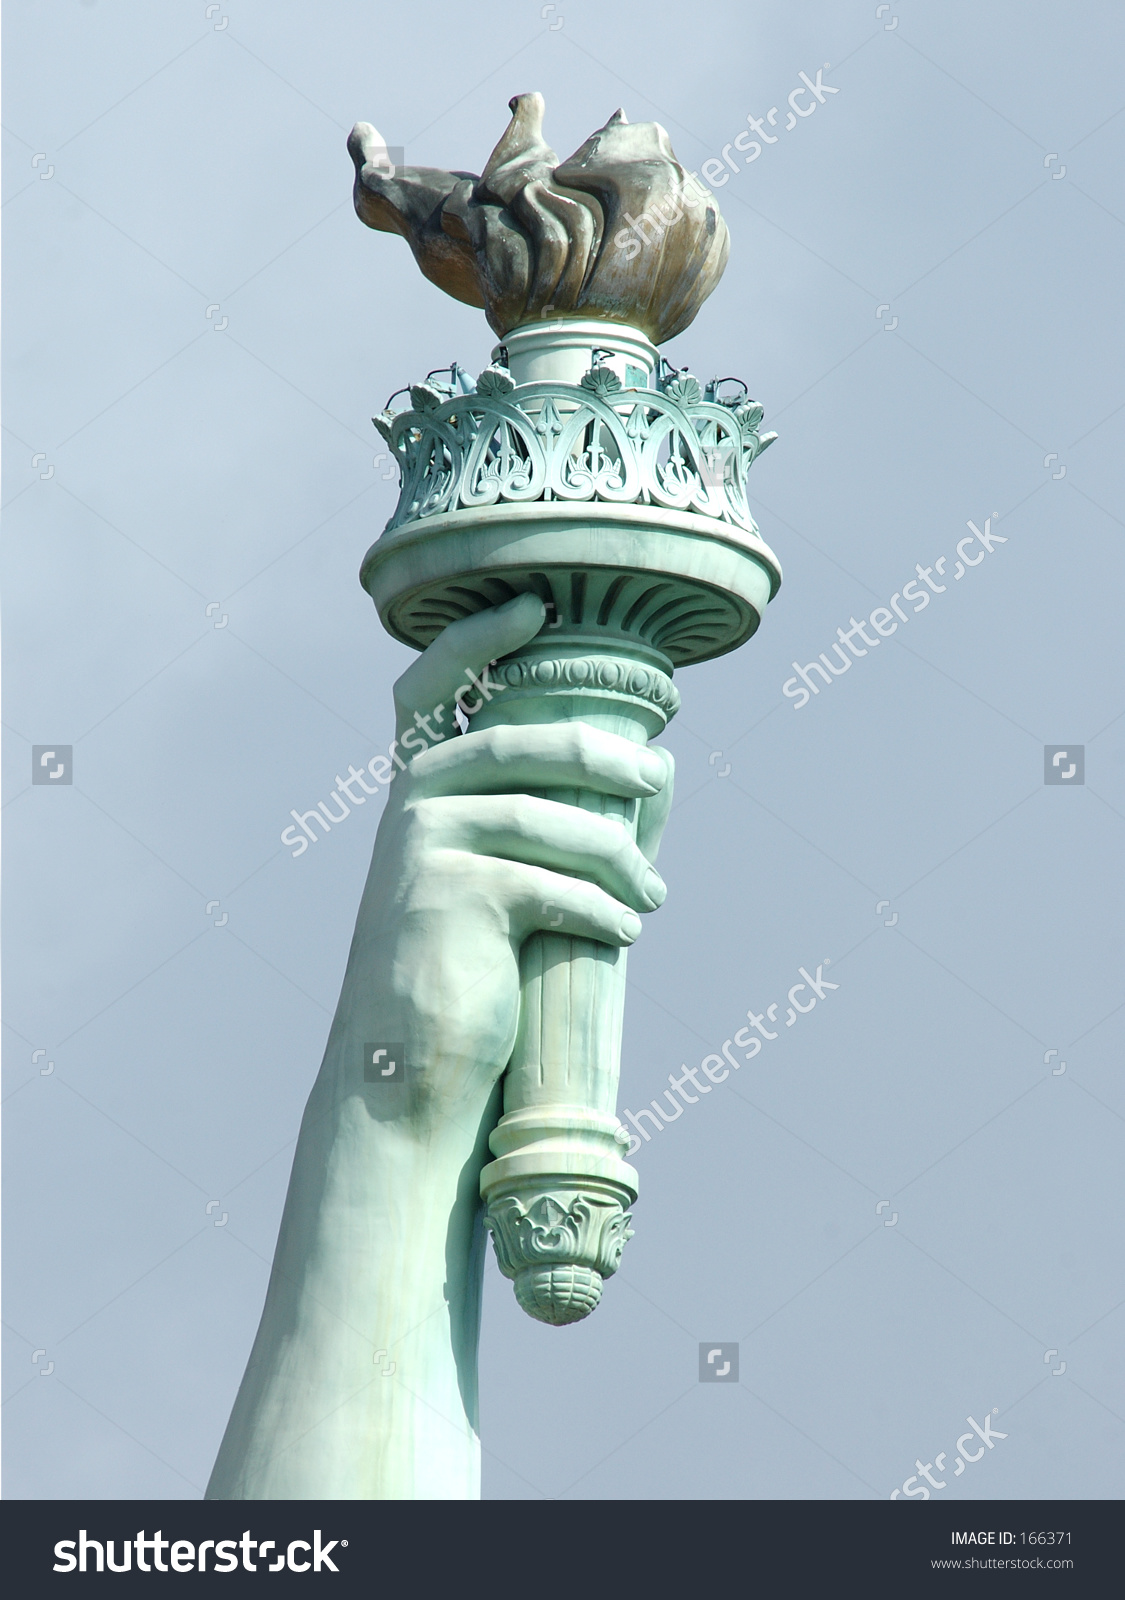 Statue of liberty torch clipart color.